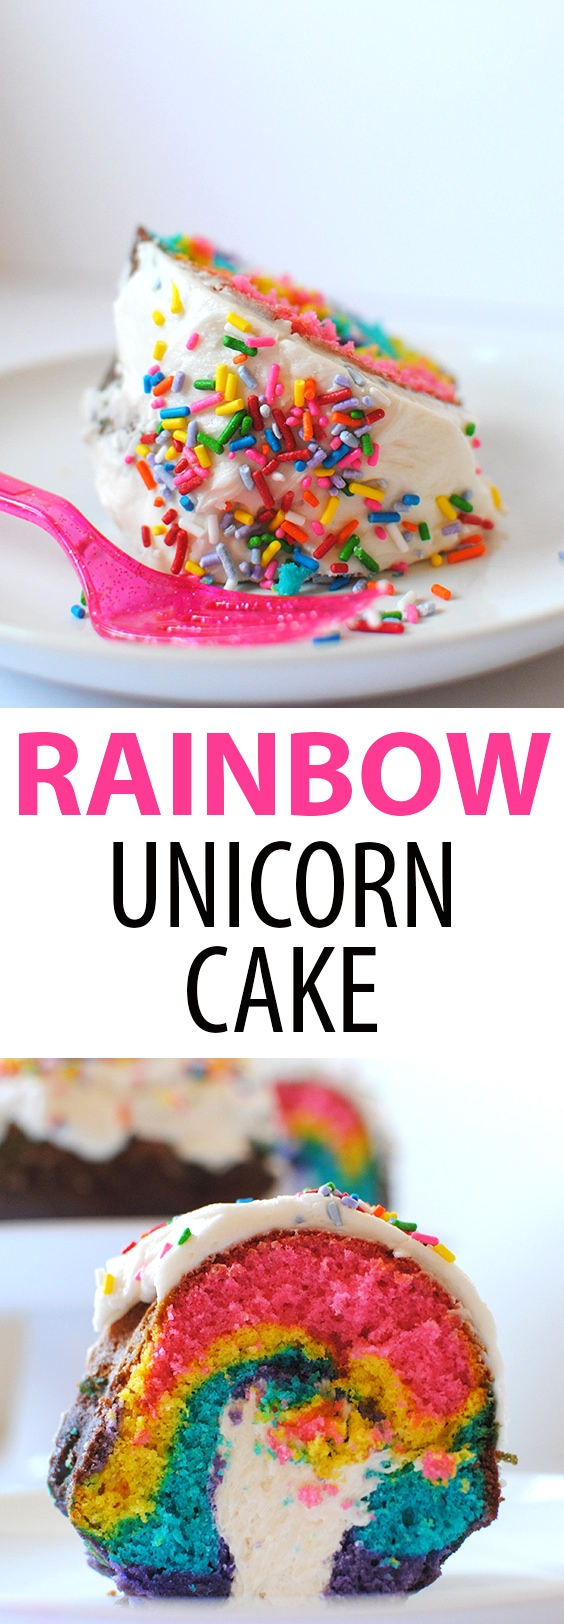 Rainbow Unicorn Cake with Twinkie Filling by Let's Eat Cake